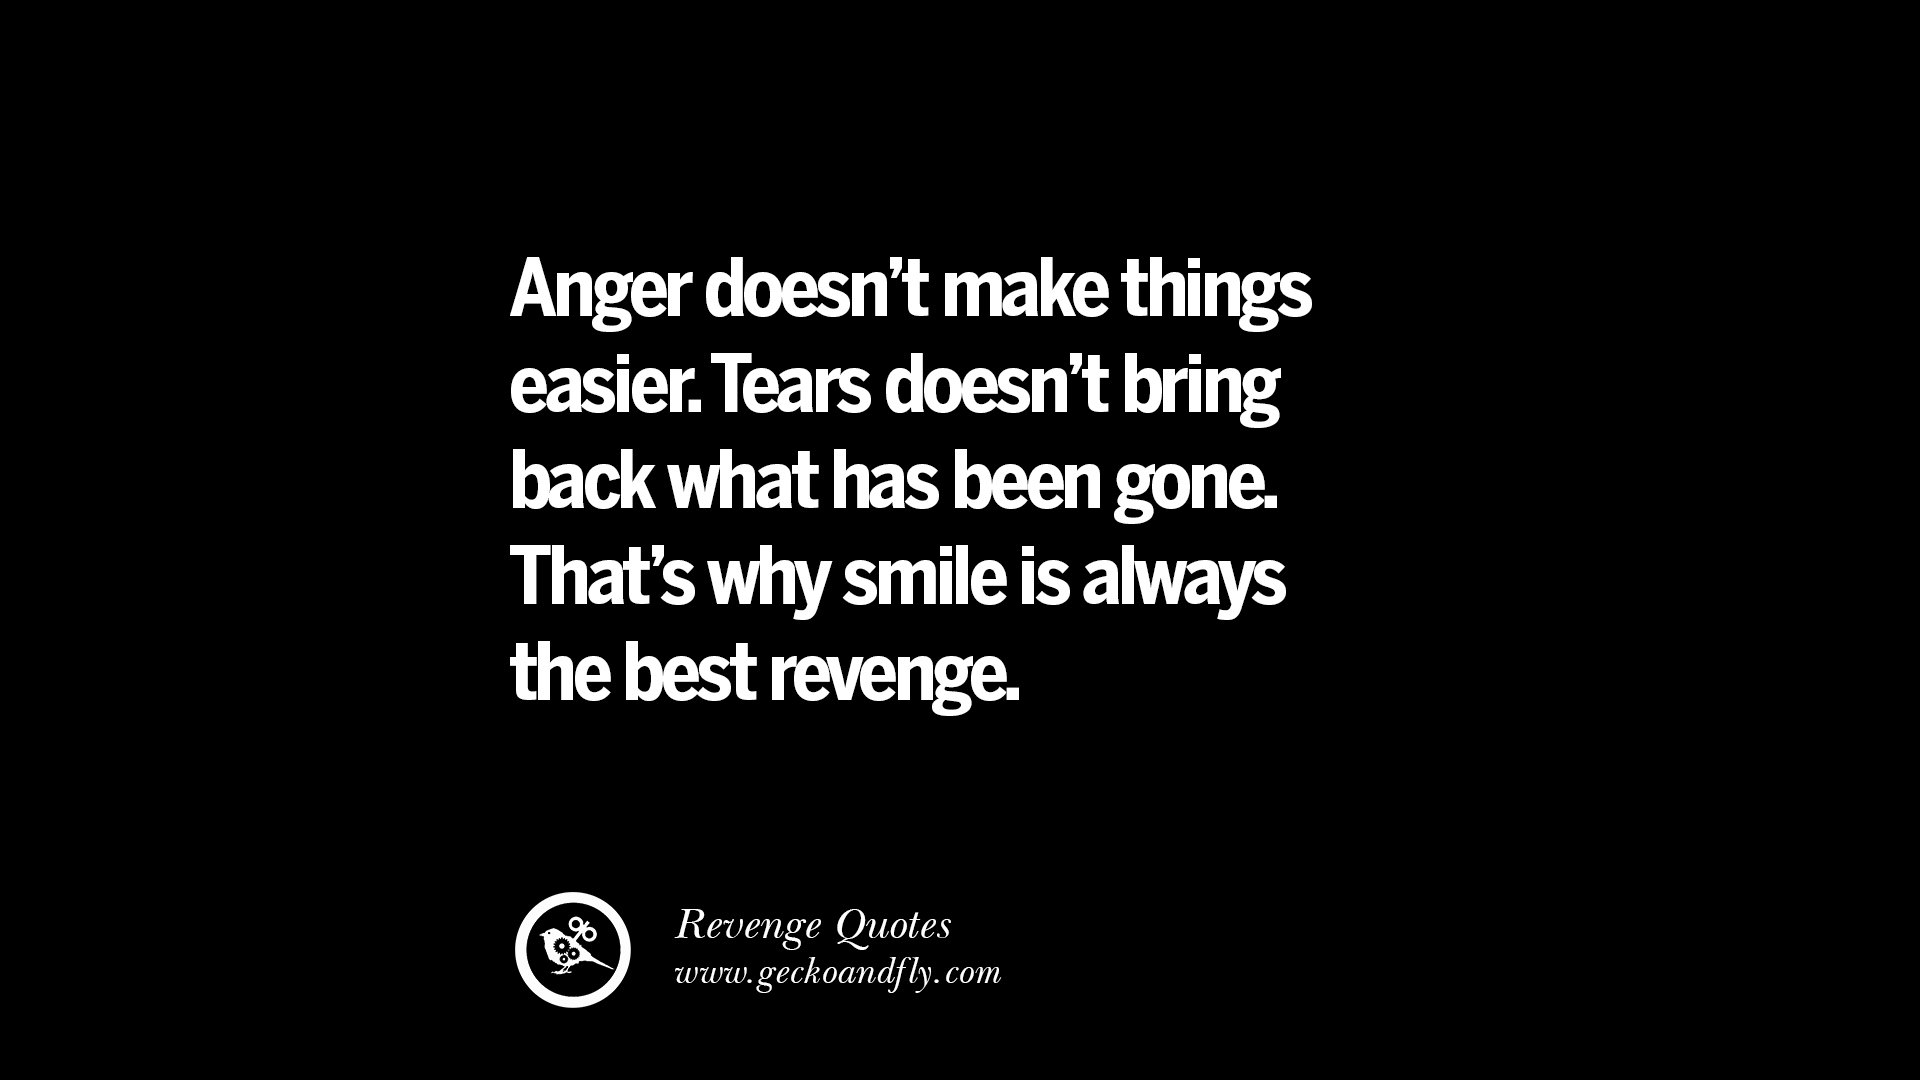 Anger doesnt make things easier tears doesnt bring back what has been gone thats why smile is always the best revenge